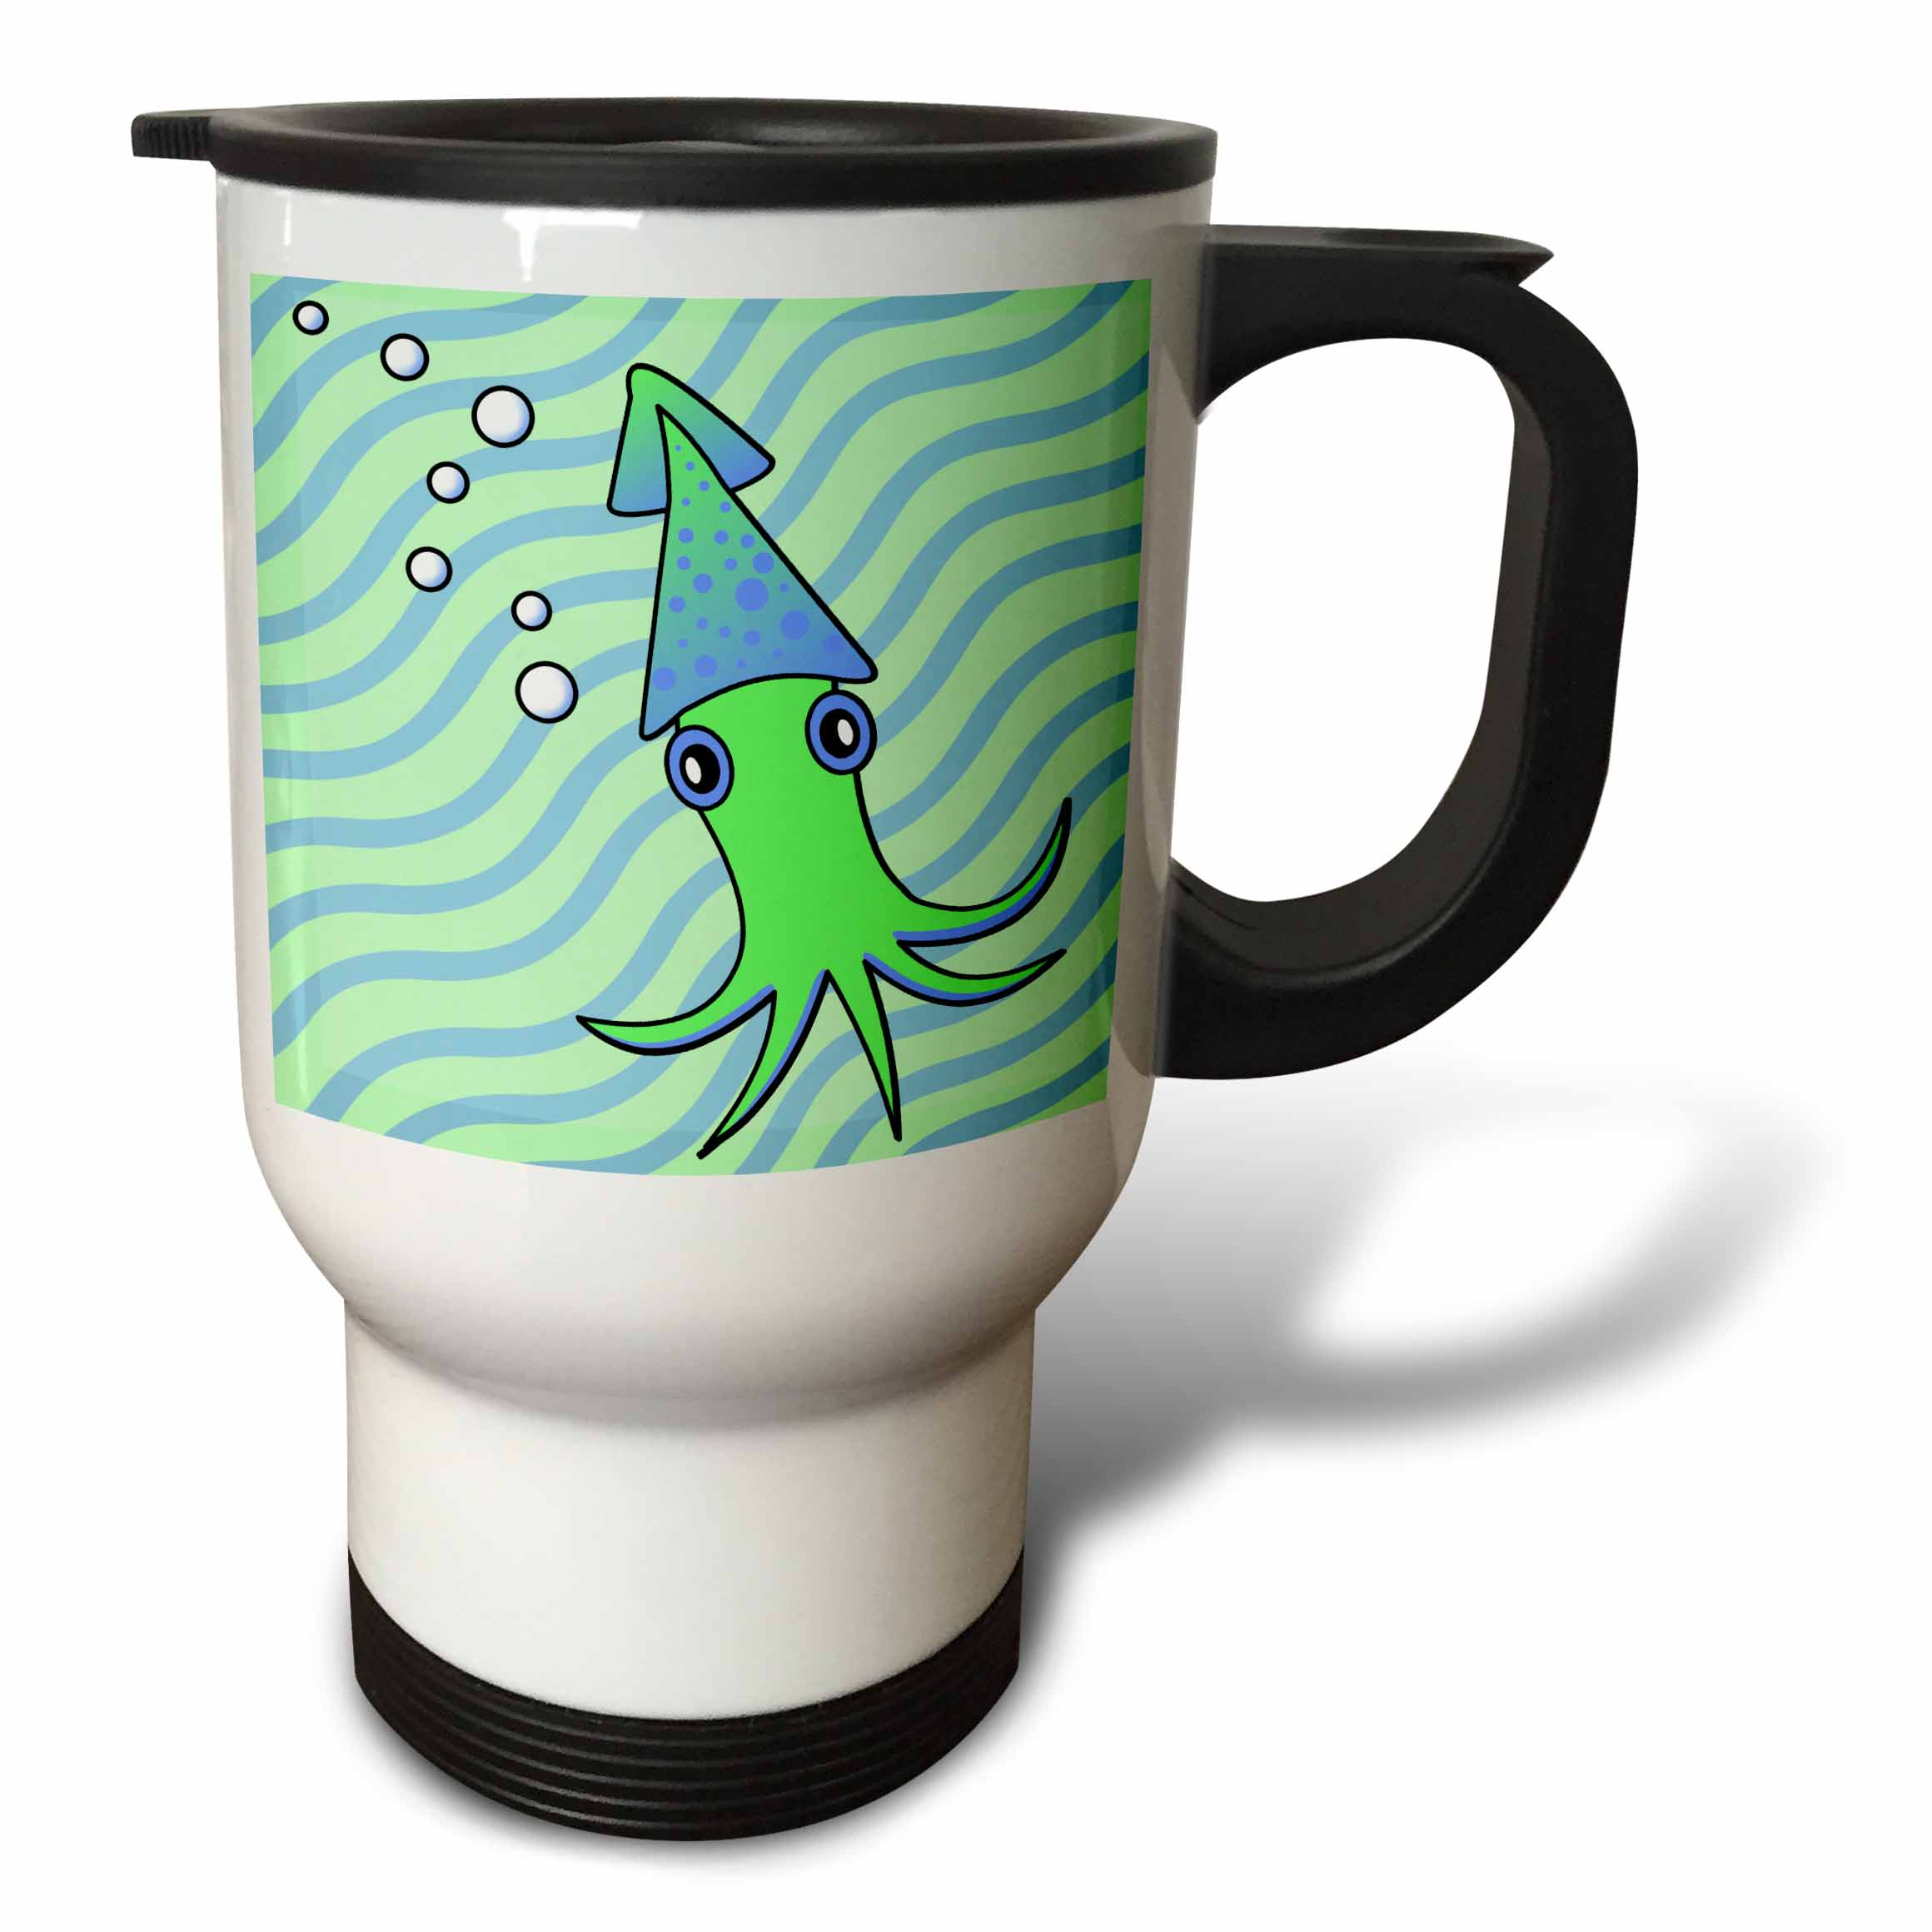 3dRose Cute Green and Blue Squid, Travel Mug, 14oz, Stainless Steel